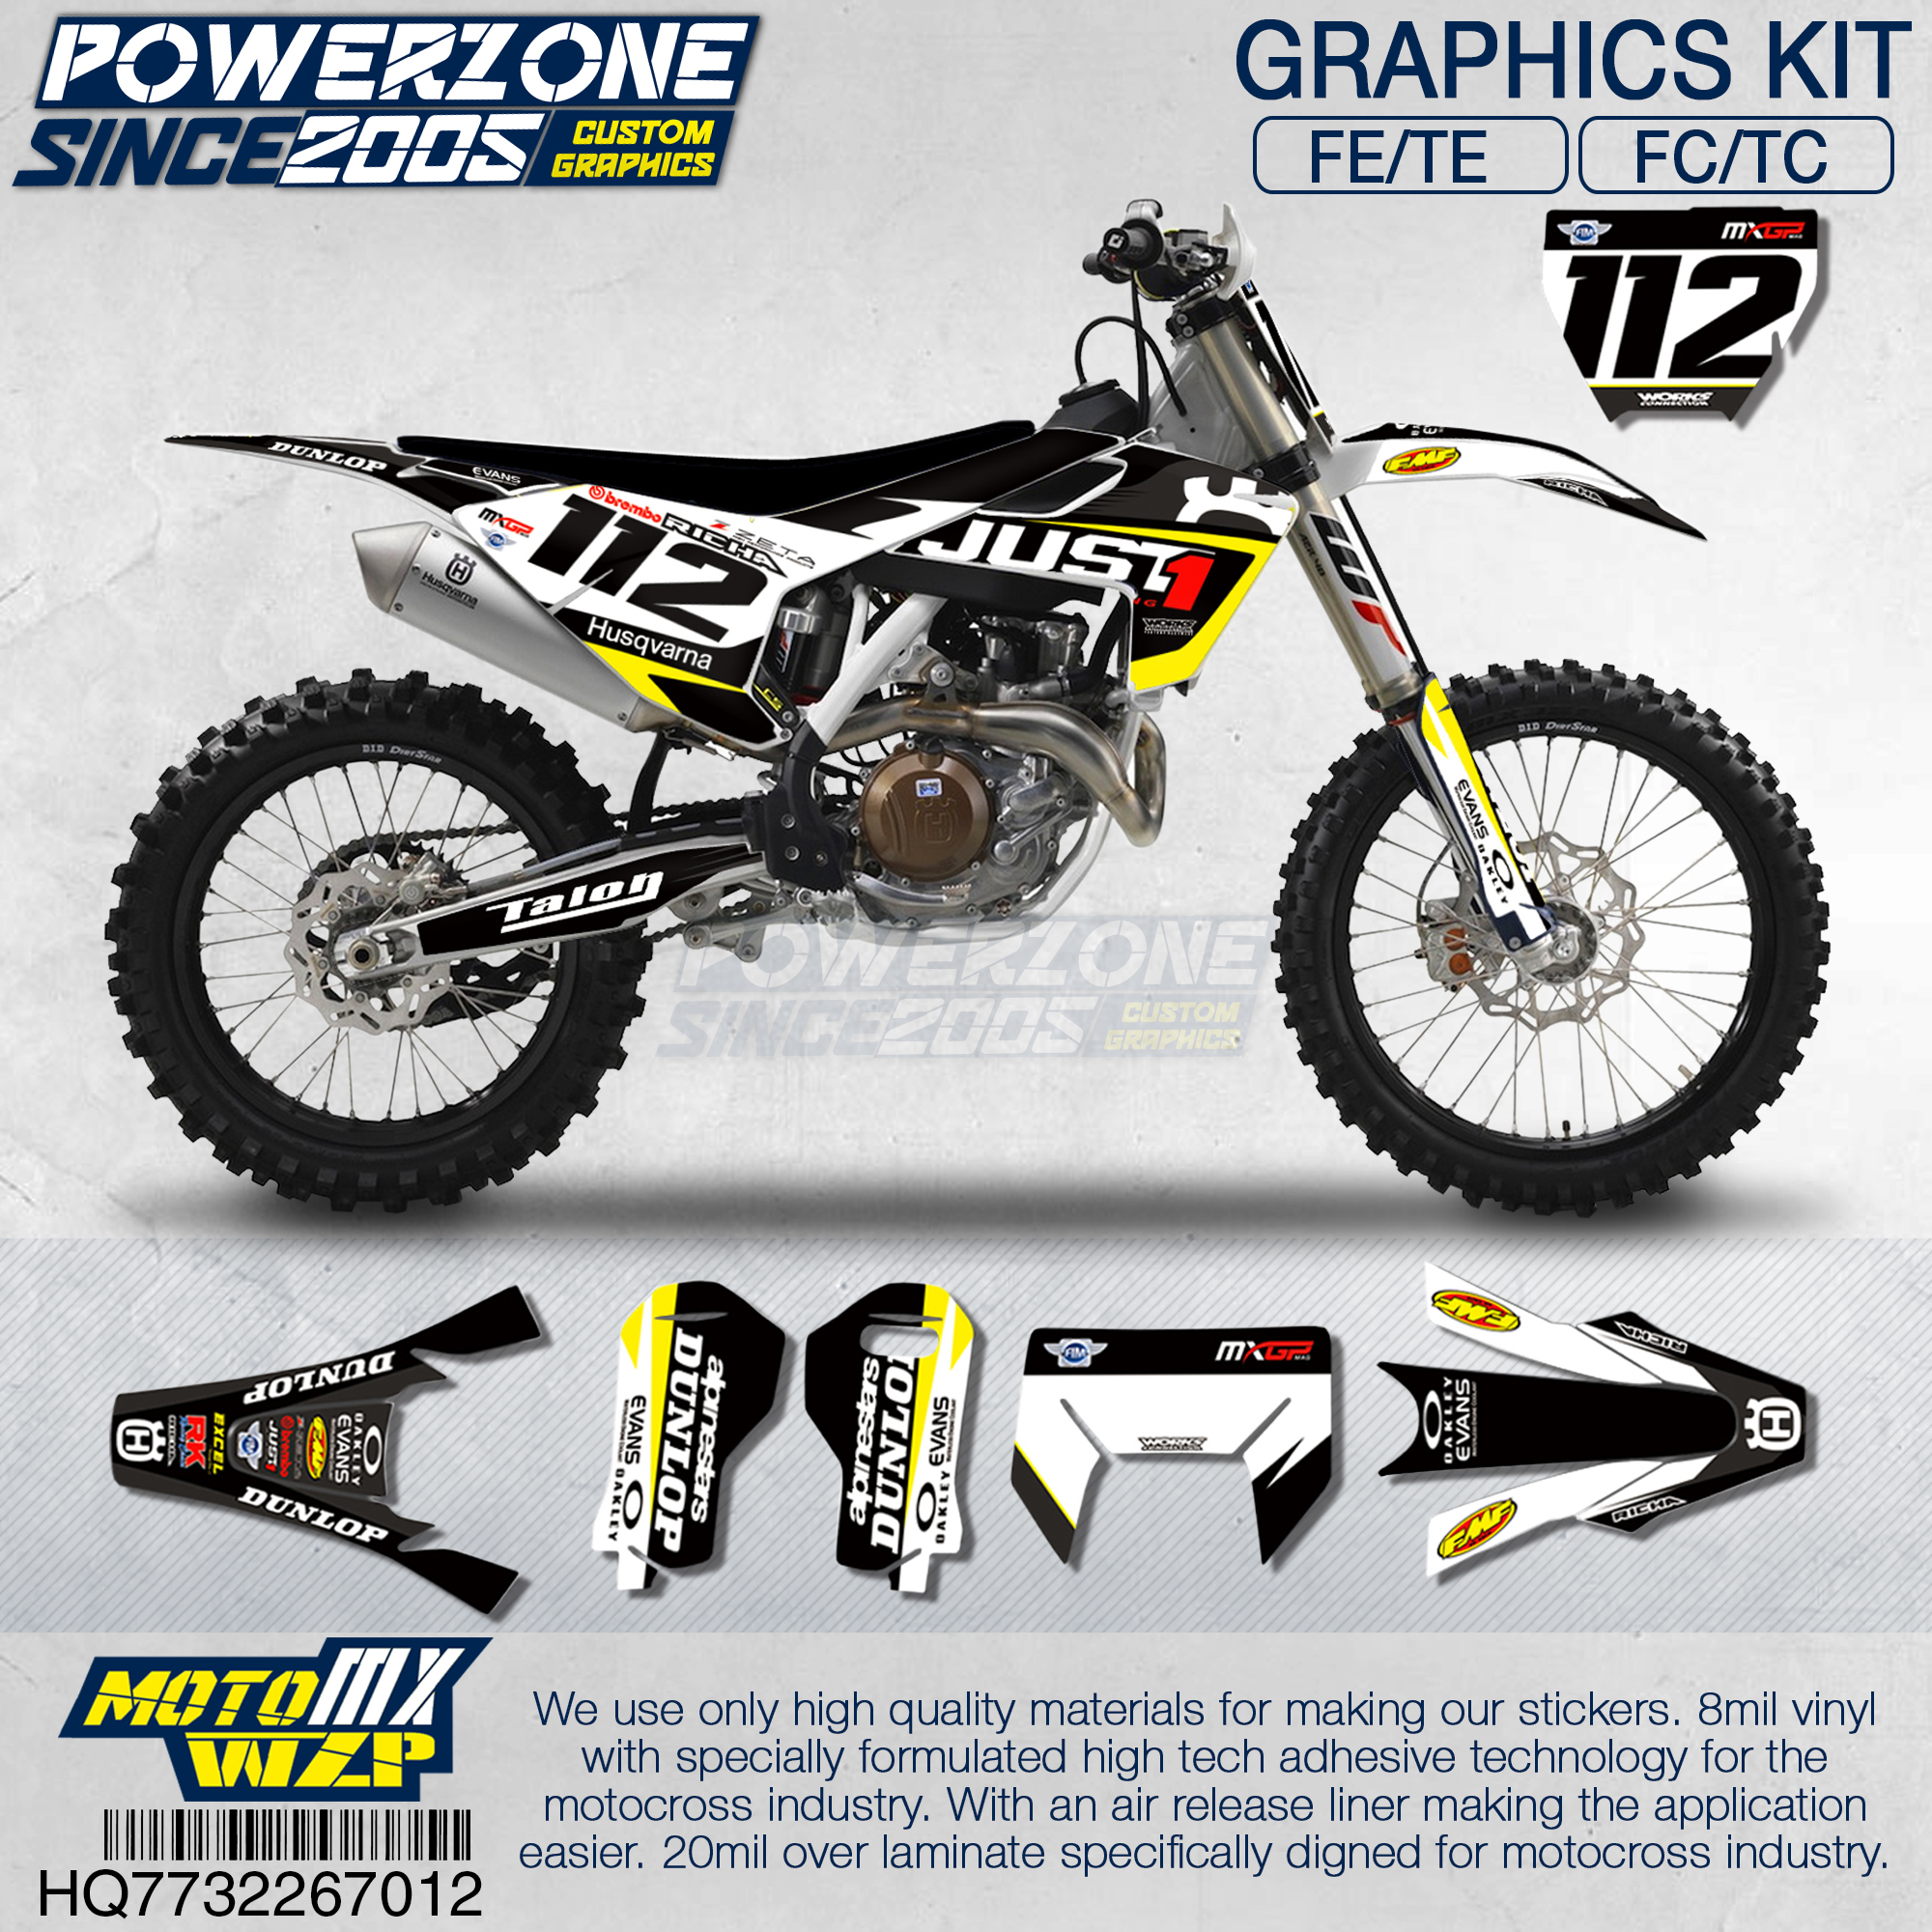 PowerZone Customized Team Graphics Backgrounds Decals 3M Custom Stickers For Husqvarna 2017 To 2019 FE TE FC TC 250 To 500cc 712